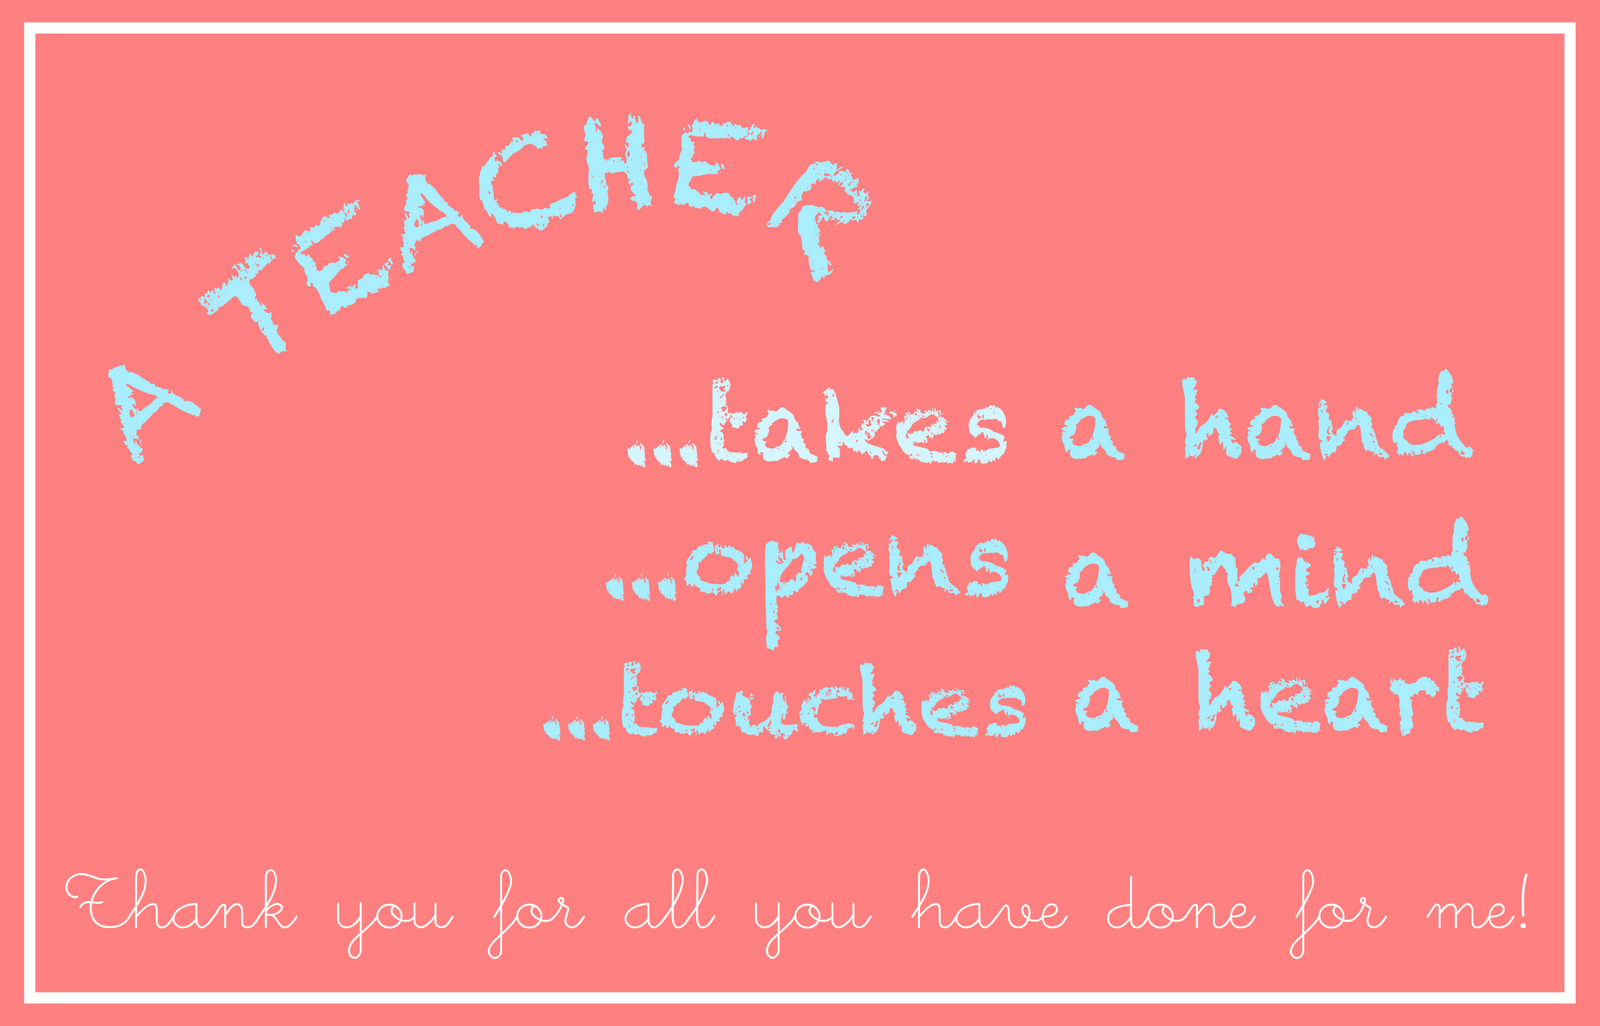 image about Teacher Appreciation Card Printable identified as totally free printable trainer appreciation card - an Lehrer